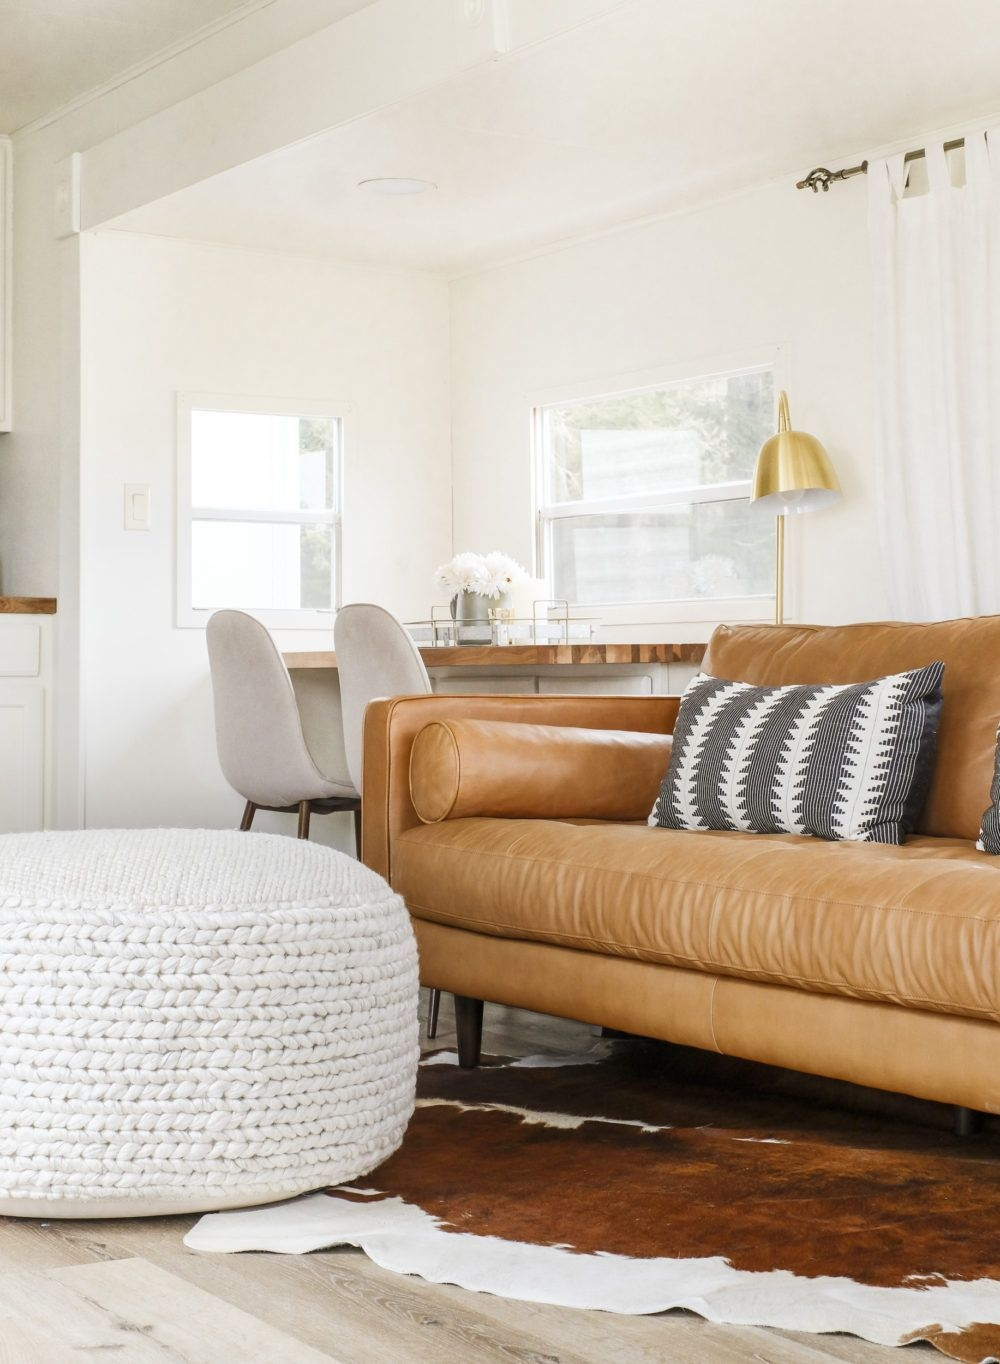 Hottest Living Room Design Ideas In A Small Space To Try29